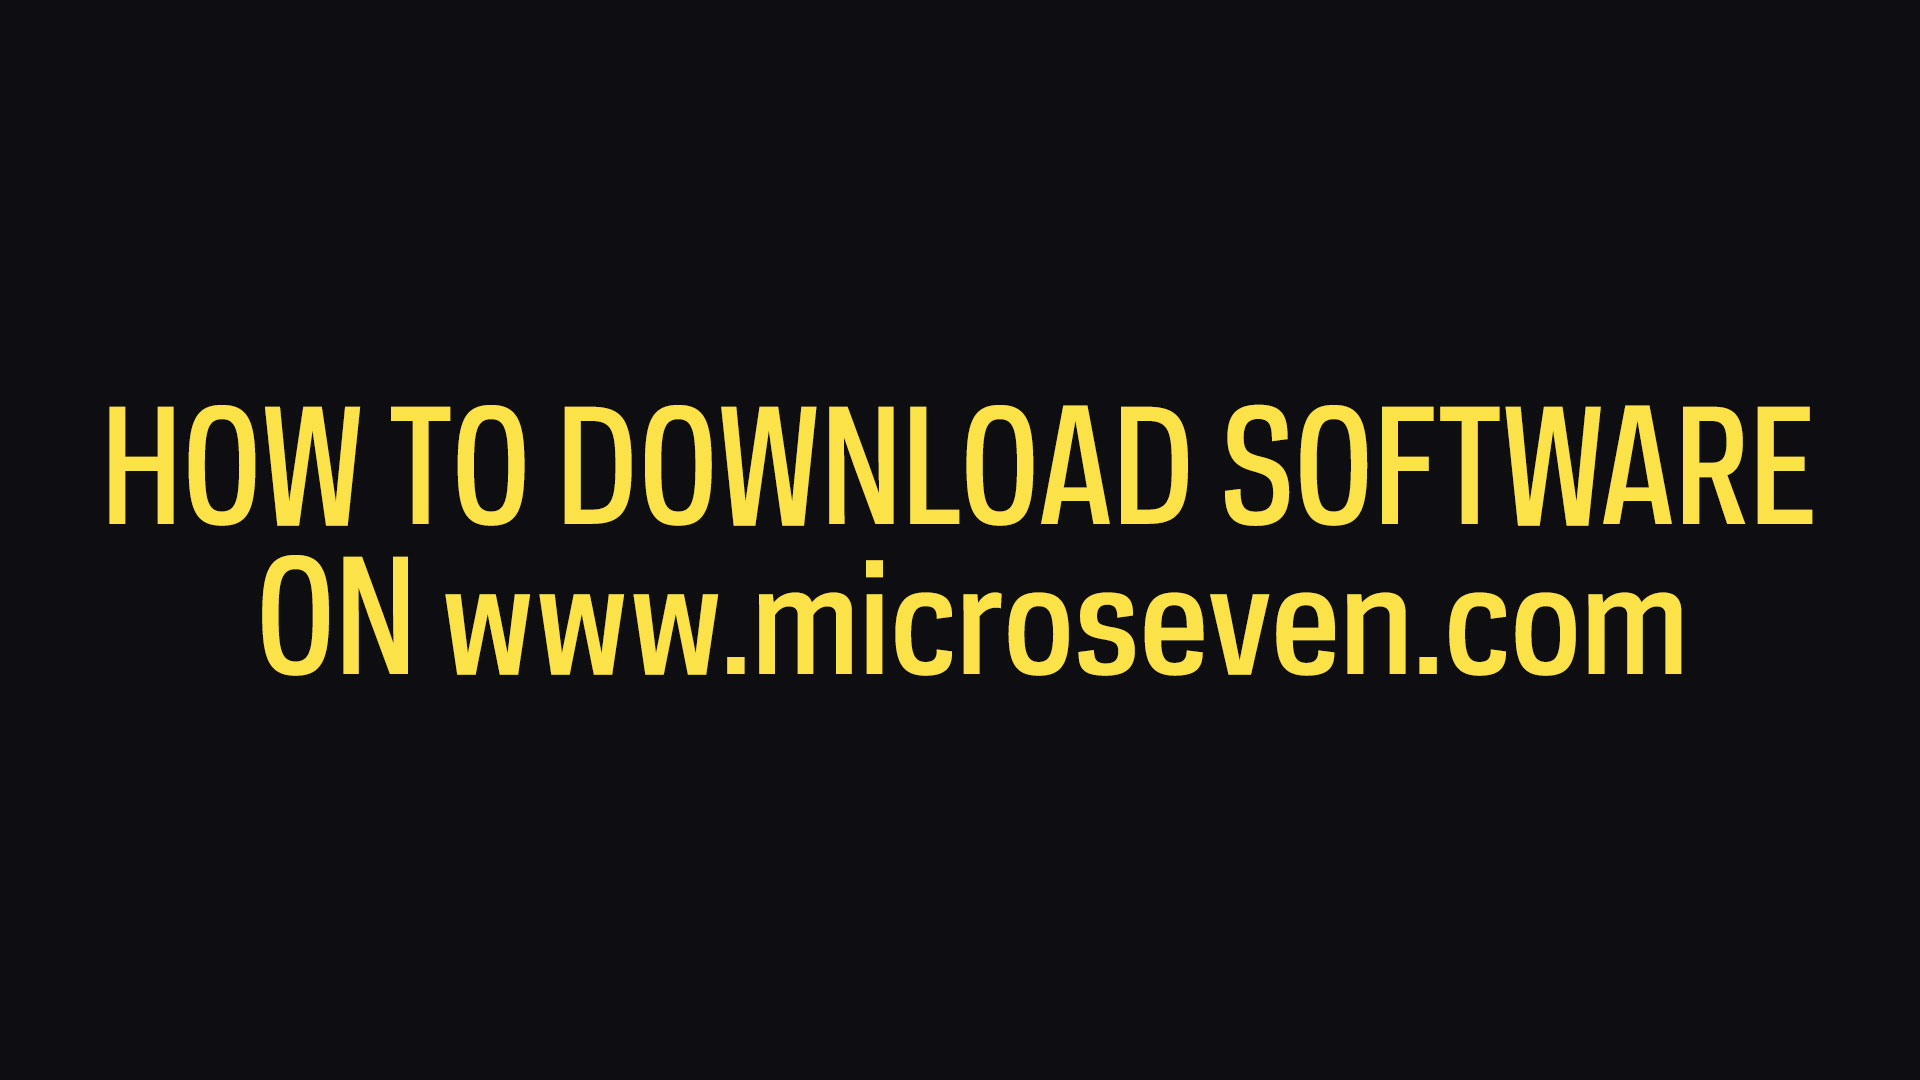 How To Download Software On www.microseven.com